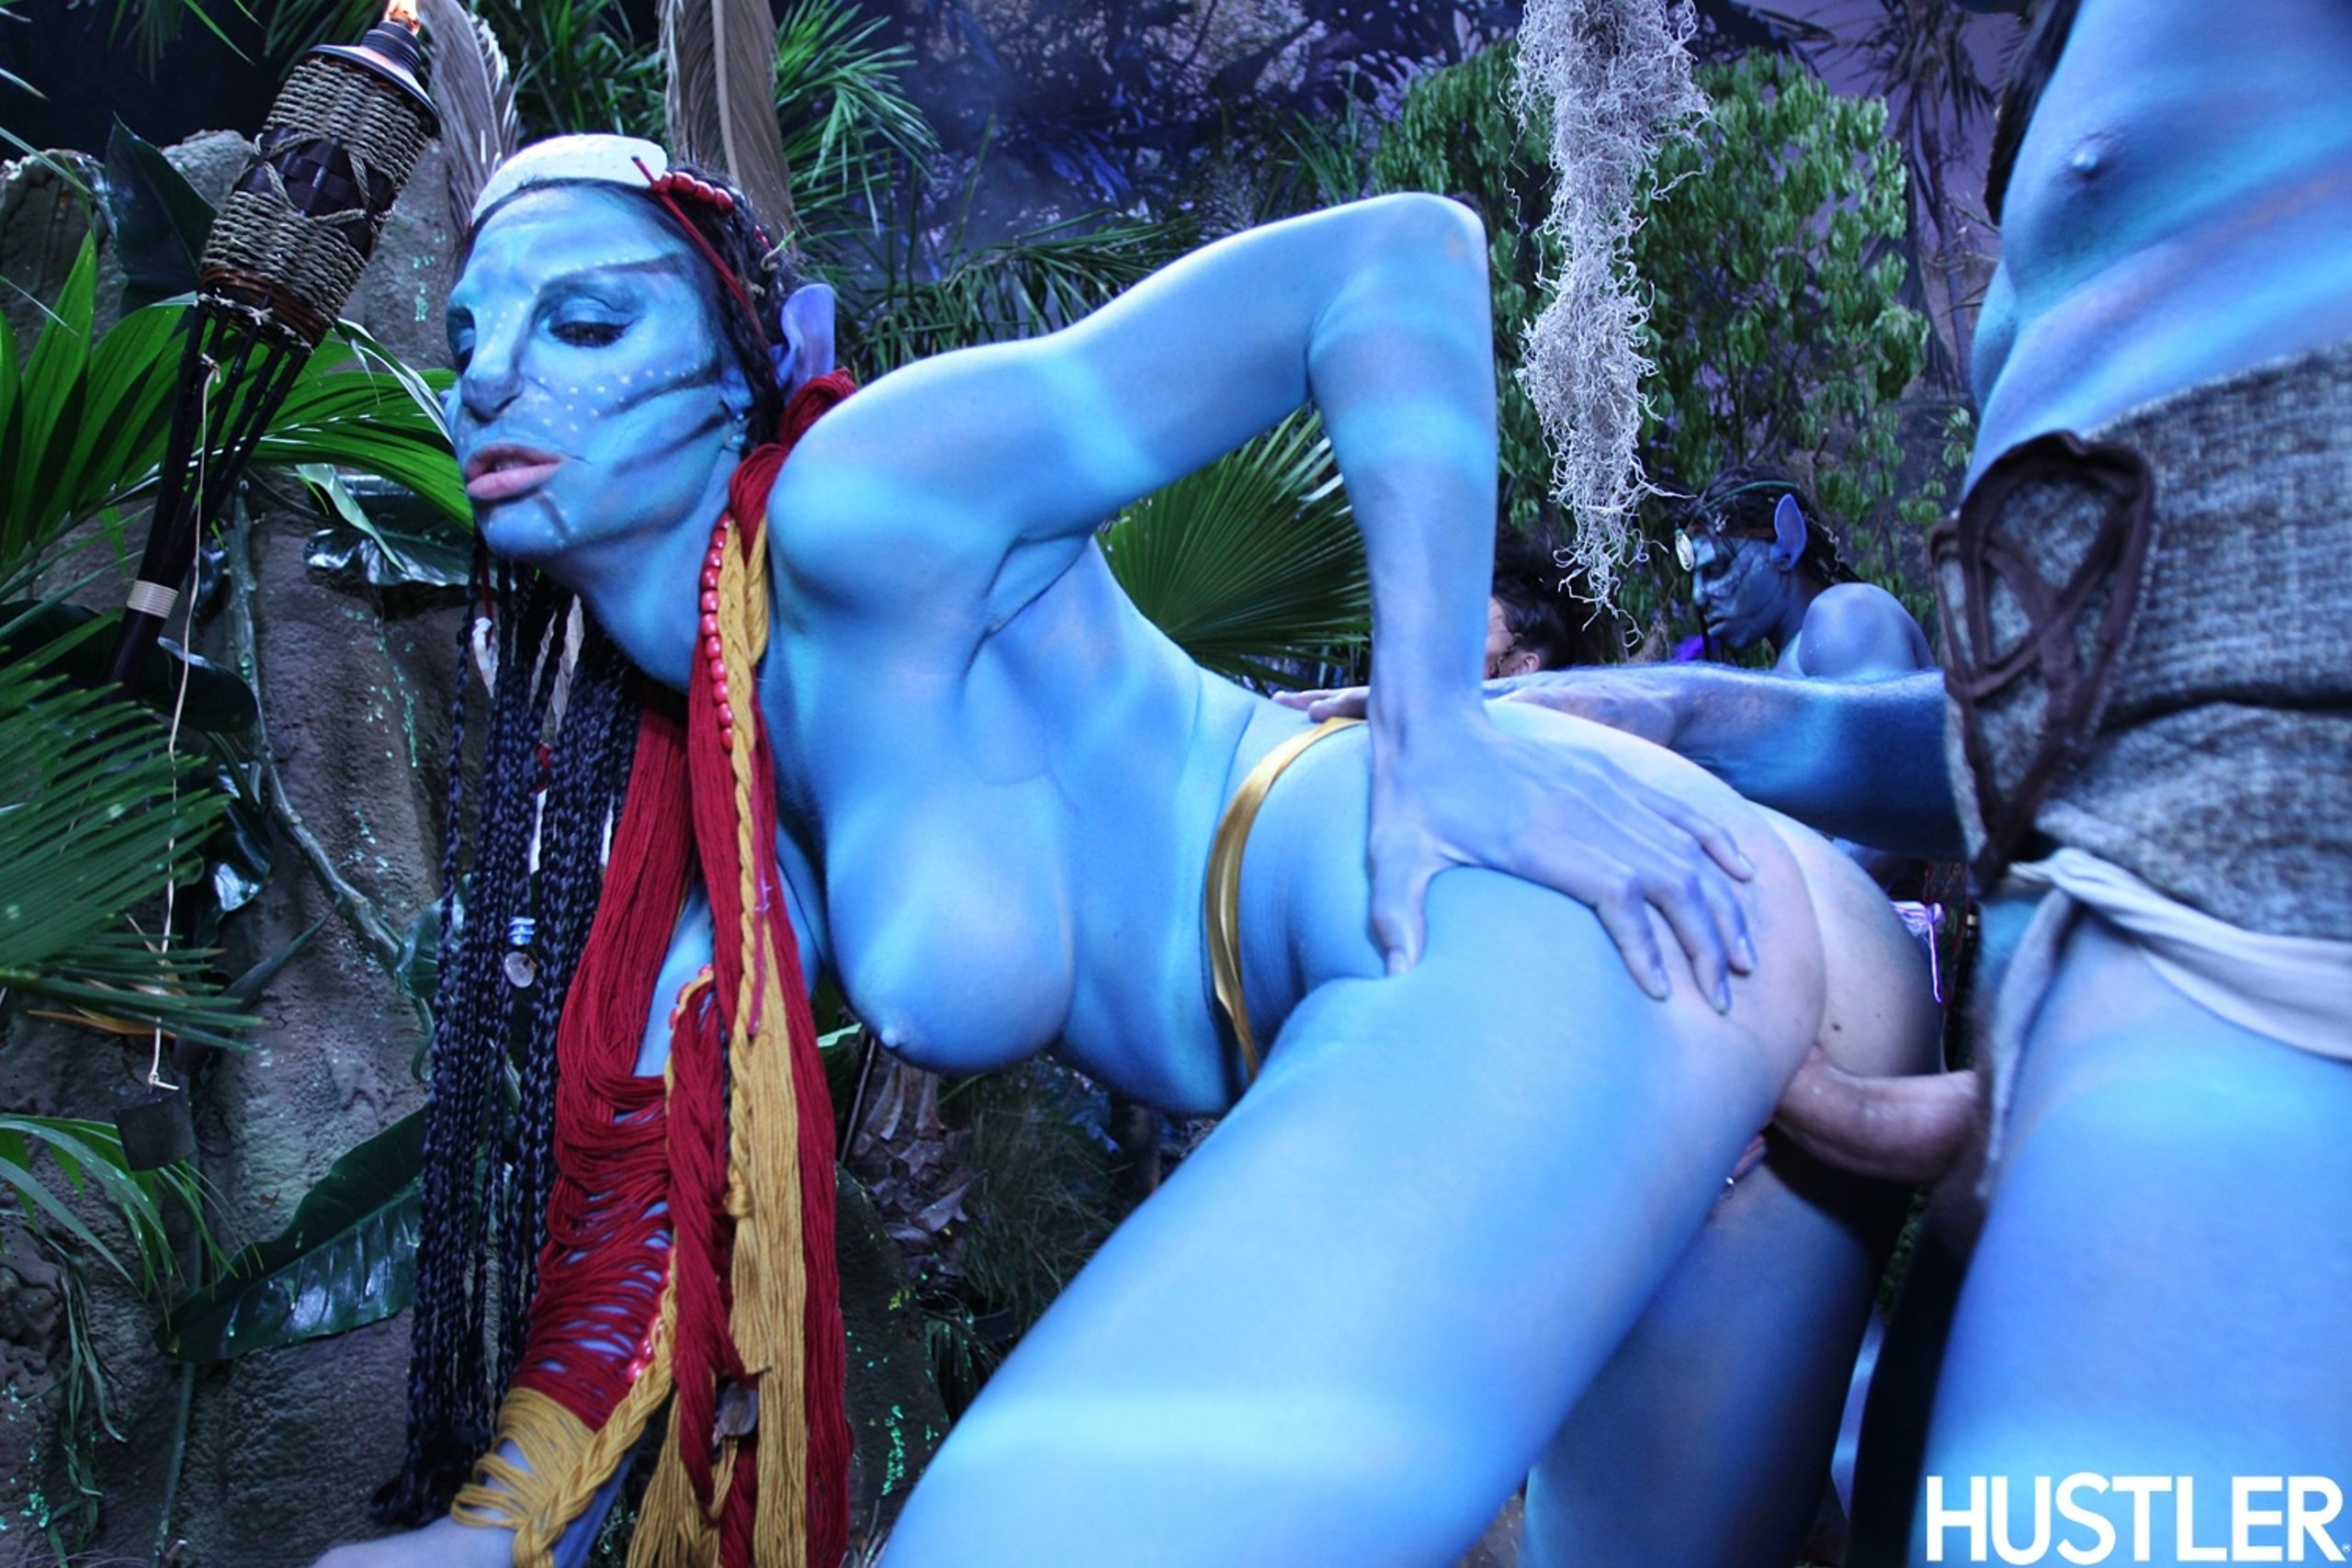 Alien Nude Girls 2 alien whore hd wallpapers and photos - ftopx